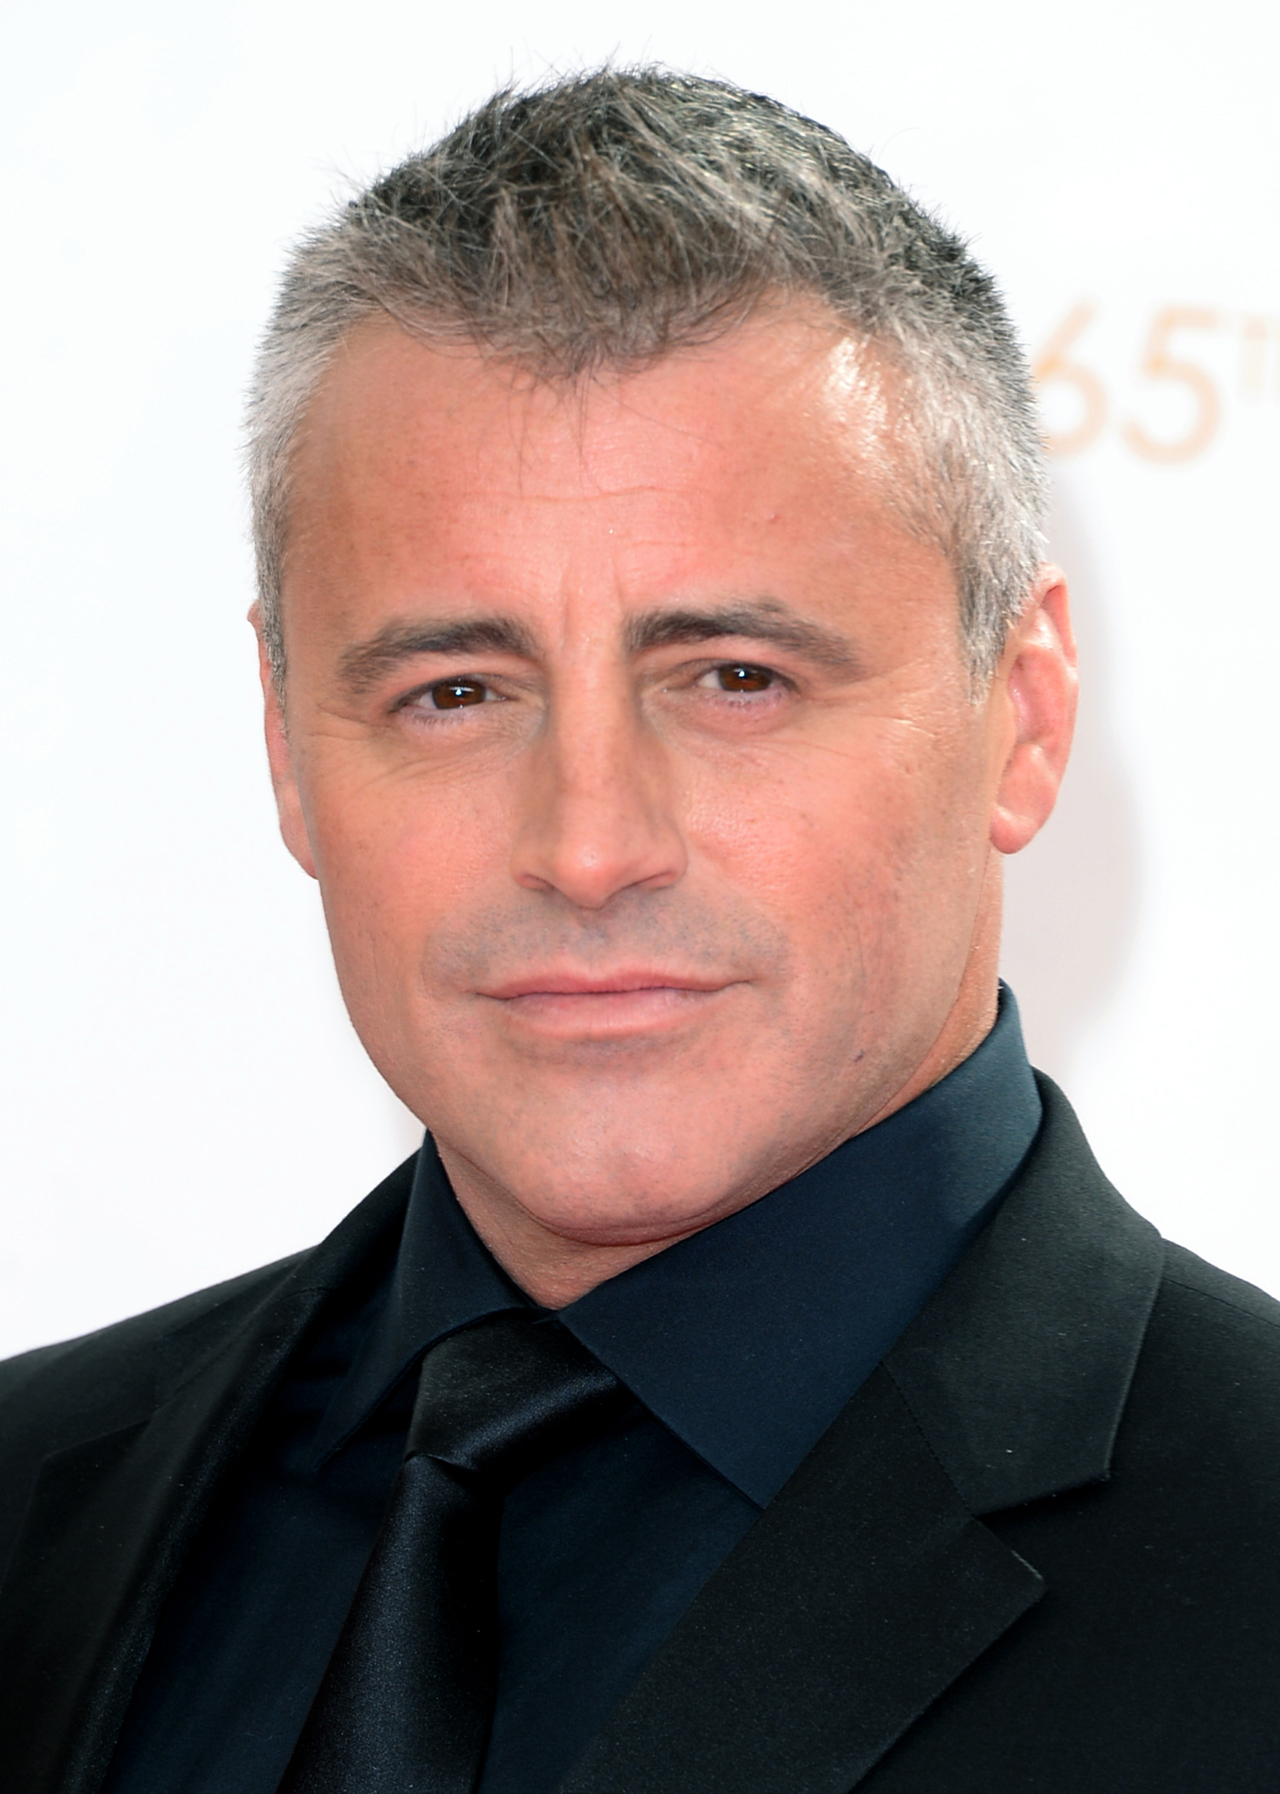 Matt LeBlanc regresa con un plan